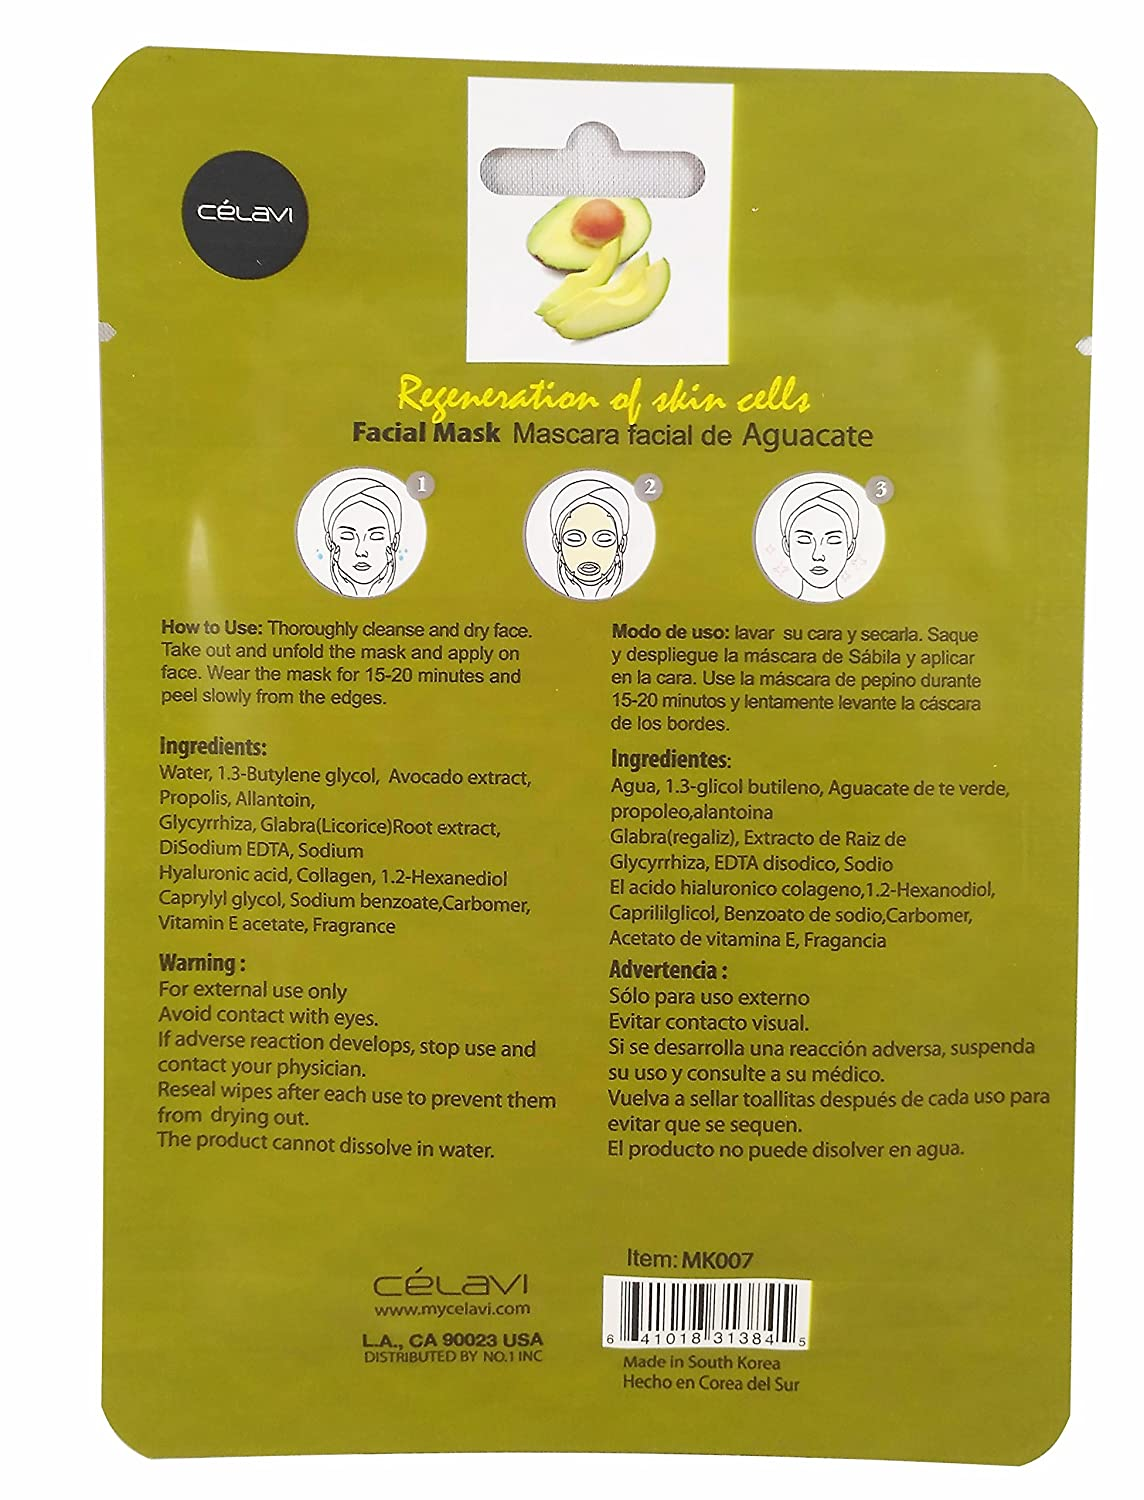 Amazon.com : Celavi Essence Facial Mask Paper Sheet Korea Skin Care Moisturizing 24 Pack (Avocado) : Beauty